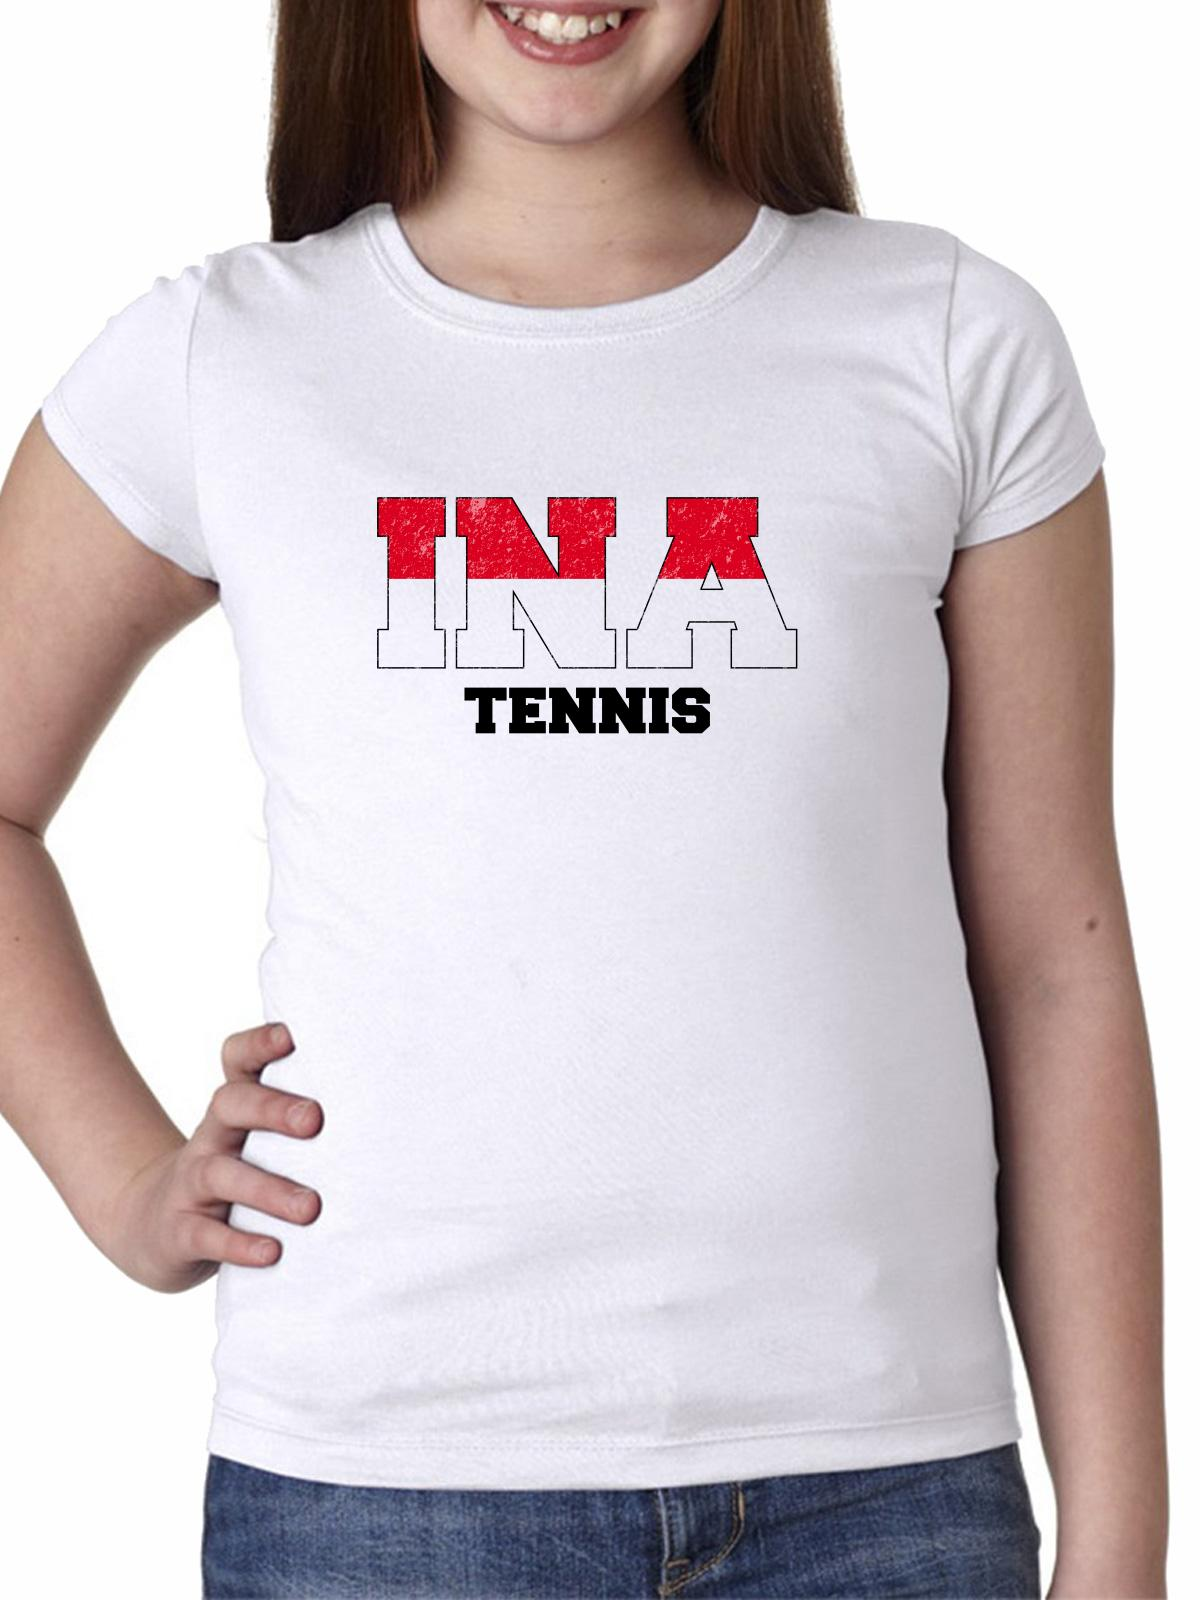 Indonesia Tennis - Olympic Games - Rio - Flag Girl's Cotton Youth T-Shirt